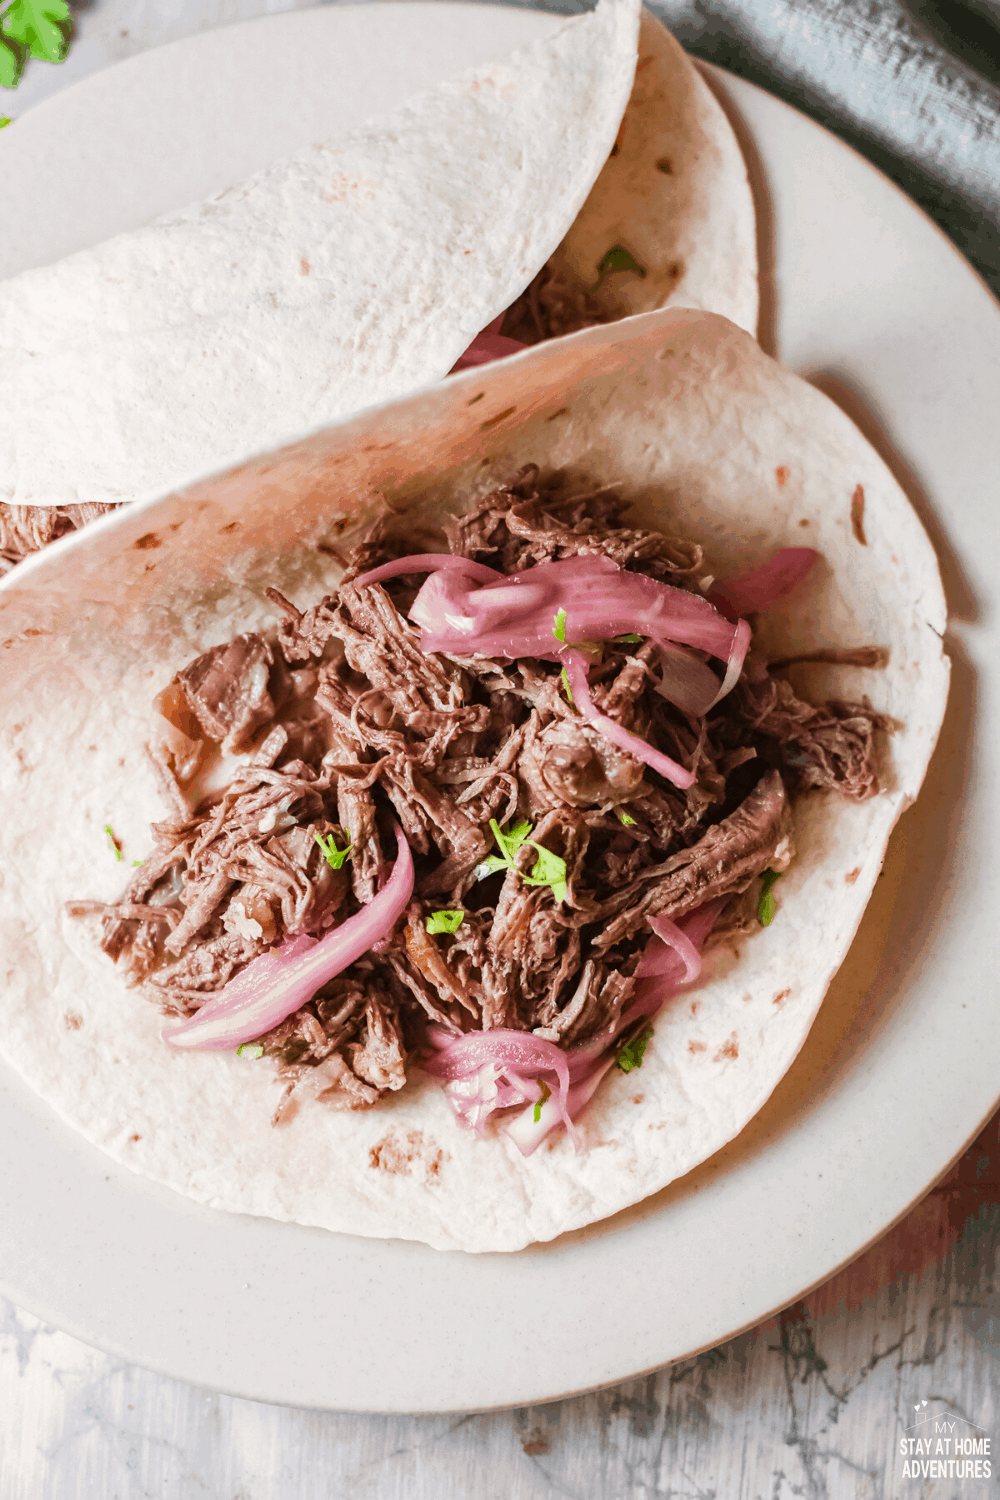 Shredded beef tacos (tacos de Carne Deshebrada) are tender, flavorful, amazing tacos that your family will ask for time and again. #tacos #tacosdeshebrada #shreddedbeeftacos #tacotuesday via @mystayathome